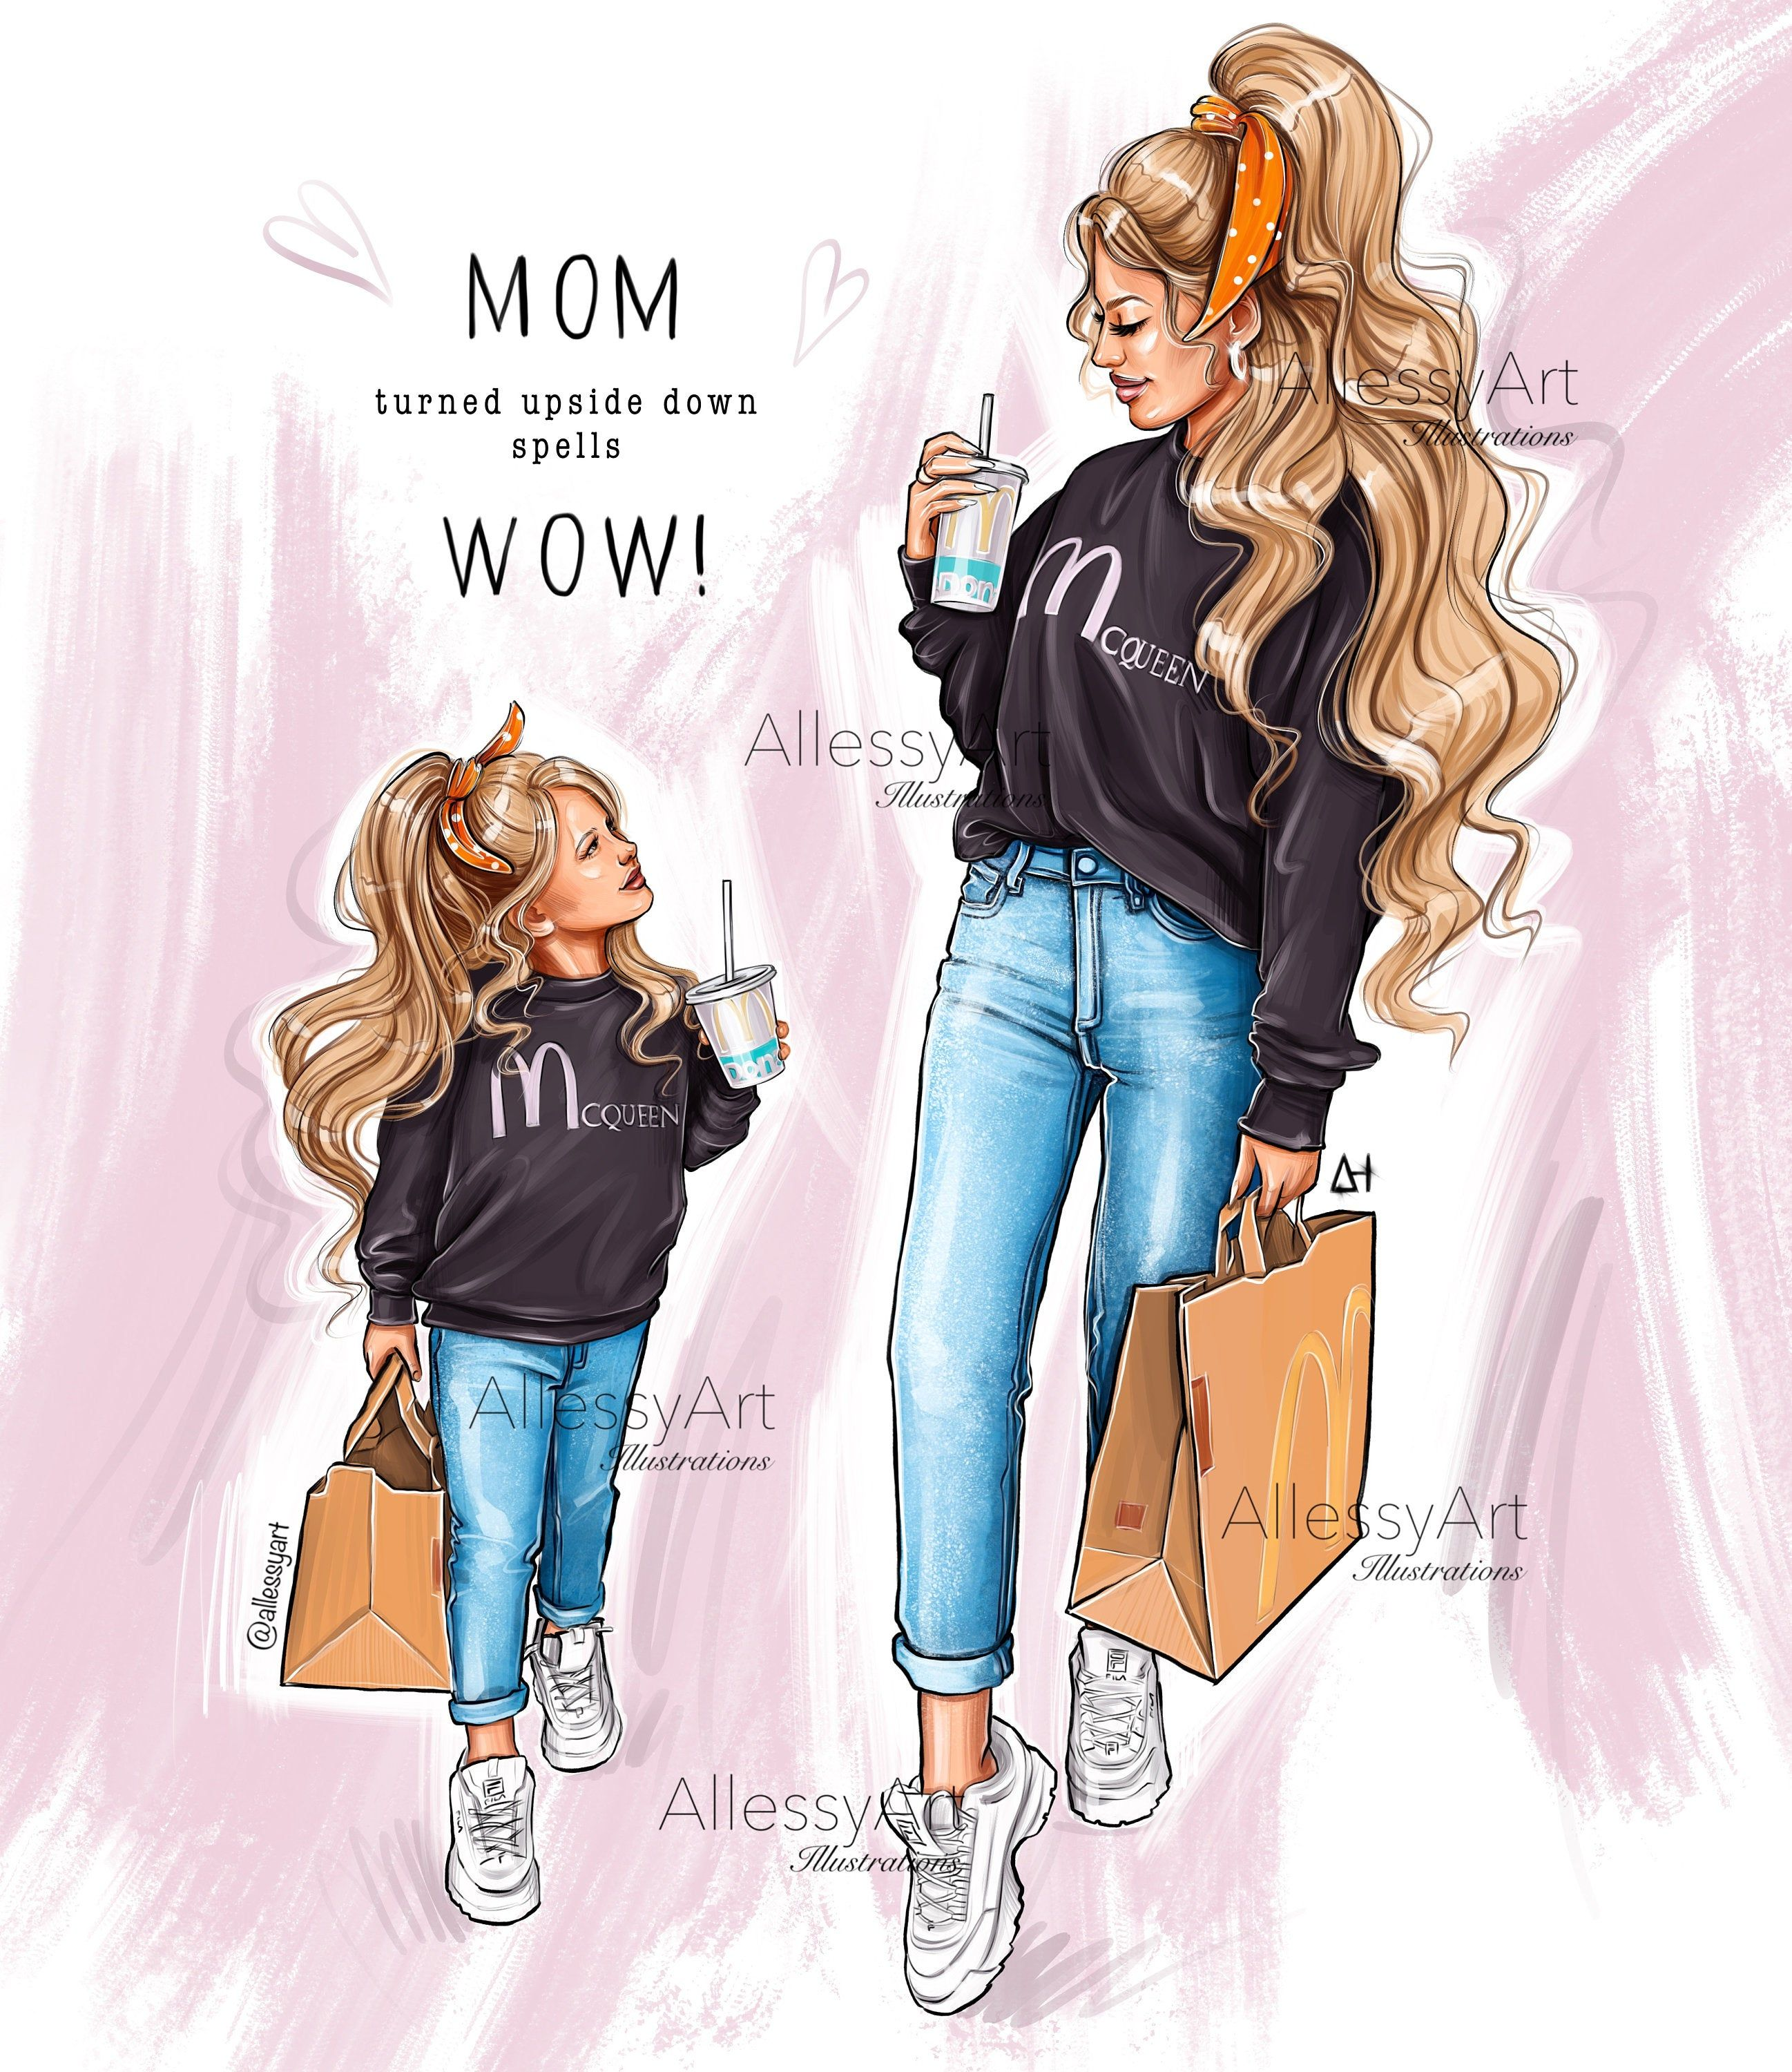 Photo of Mother and daughter clipart, instant download fashion illustration art,Mom turned upside down spells wow clipart Mother's Day printable